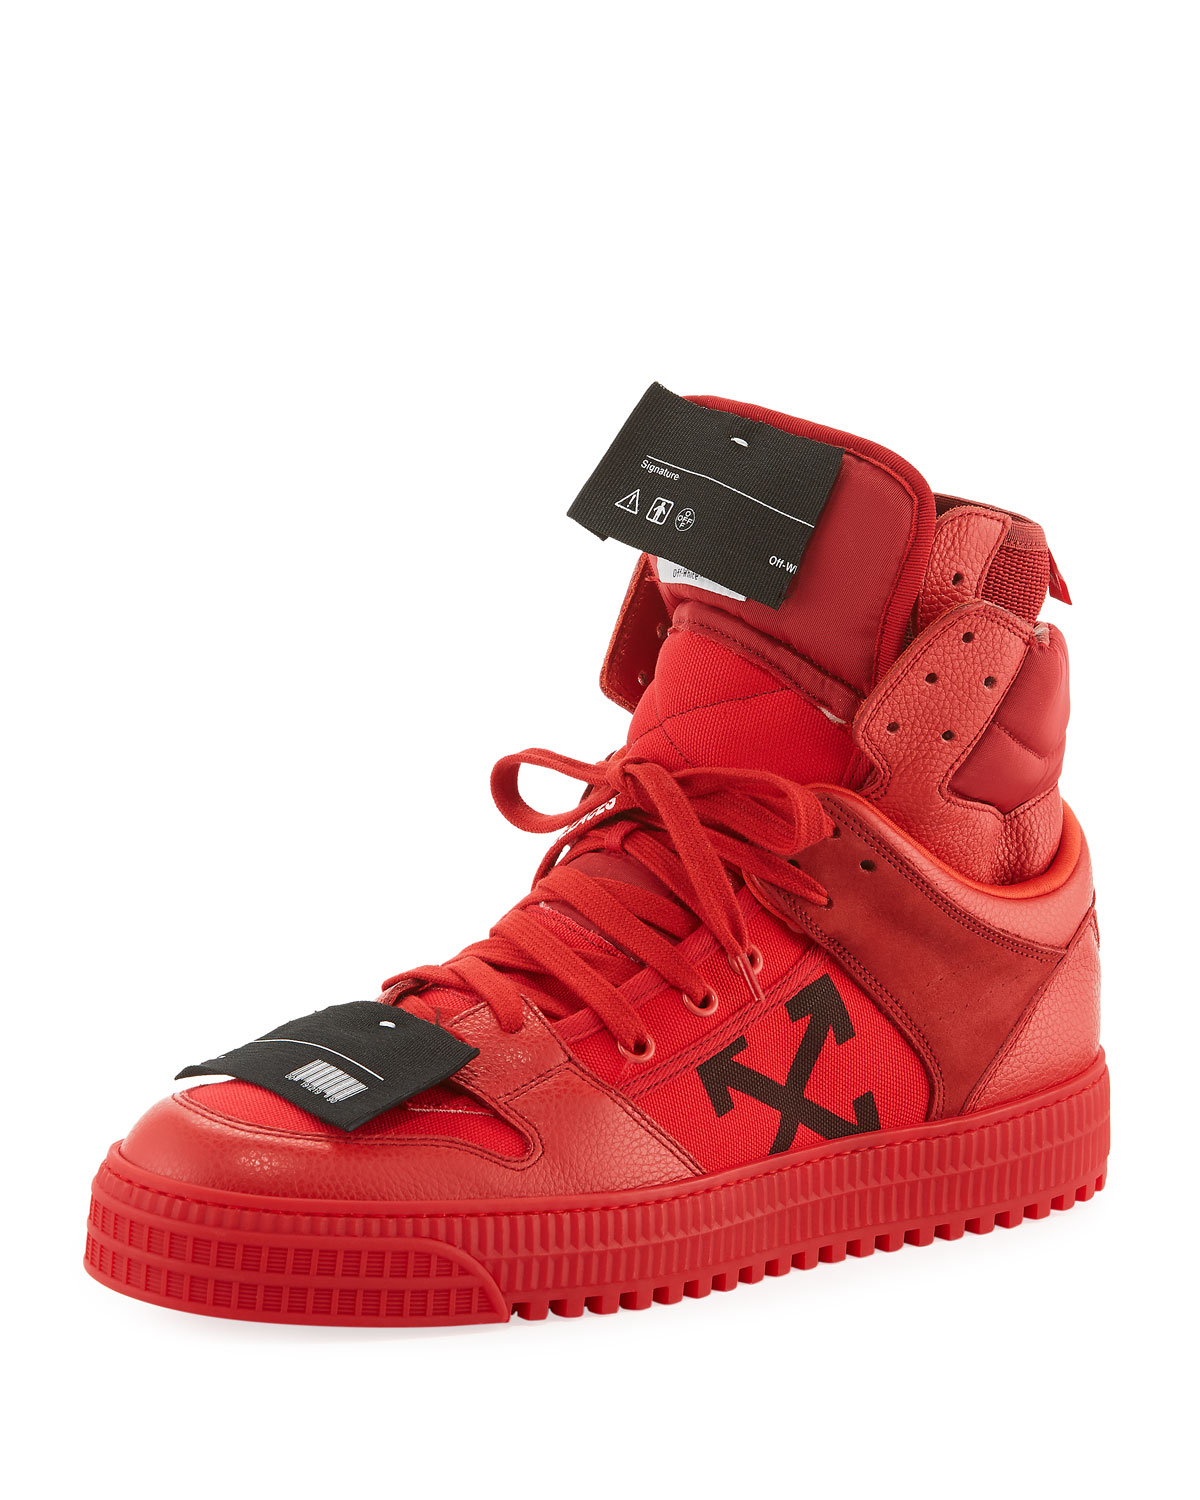 Leather Sneakers, Red   Neiman Marcus